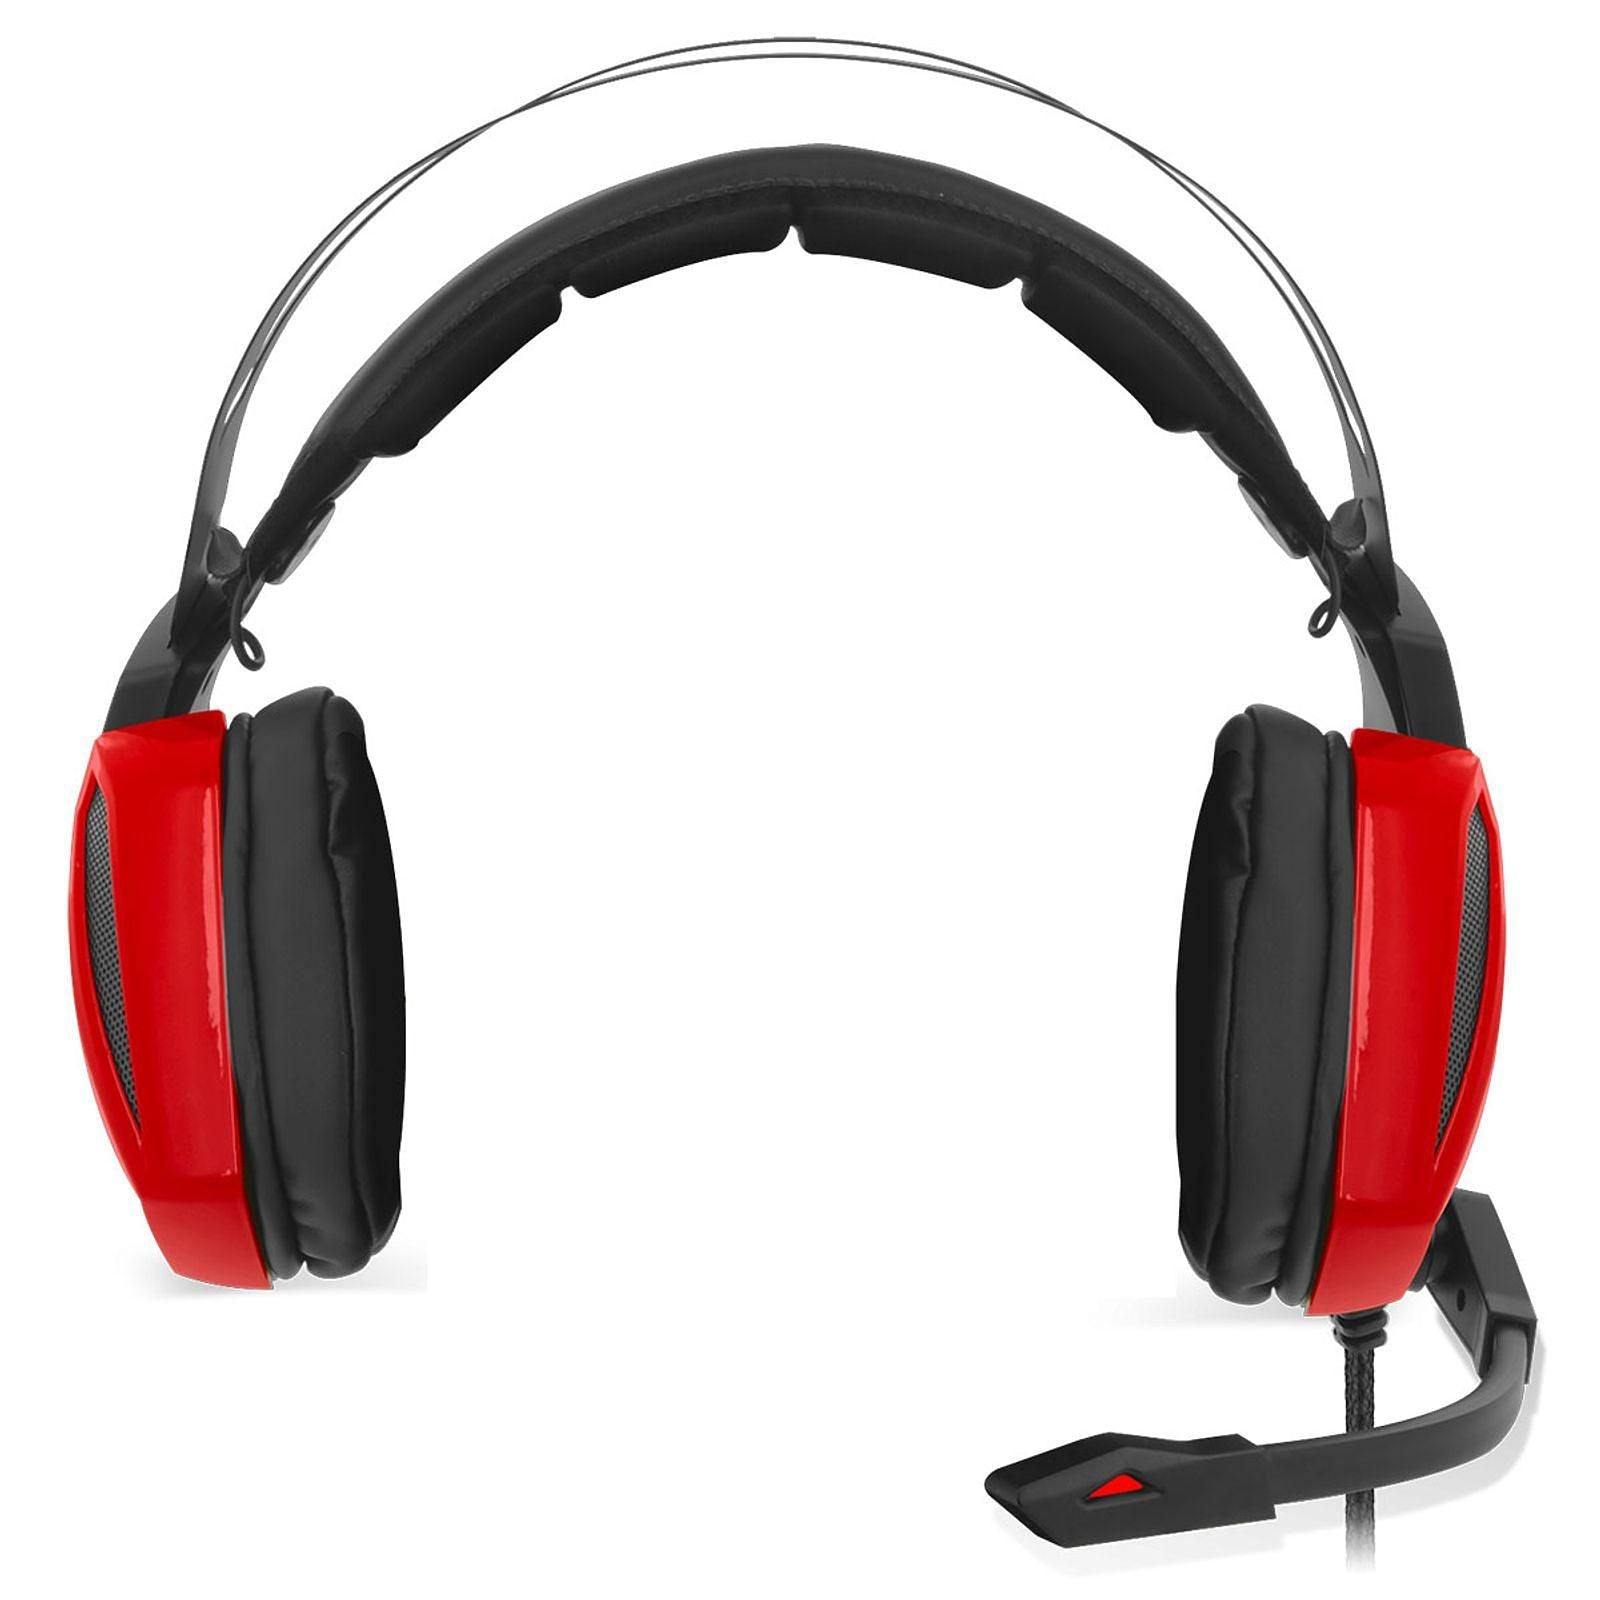 Spirit of Gamer Xpert-H100 Red Edition - Casque-micro pour gamer son surround 7.1 virtuel et rétro-éclairage rouge (USB / PC) Casque Gaming